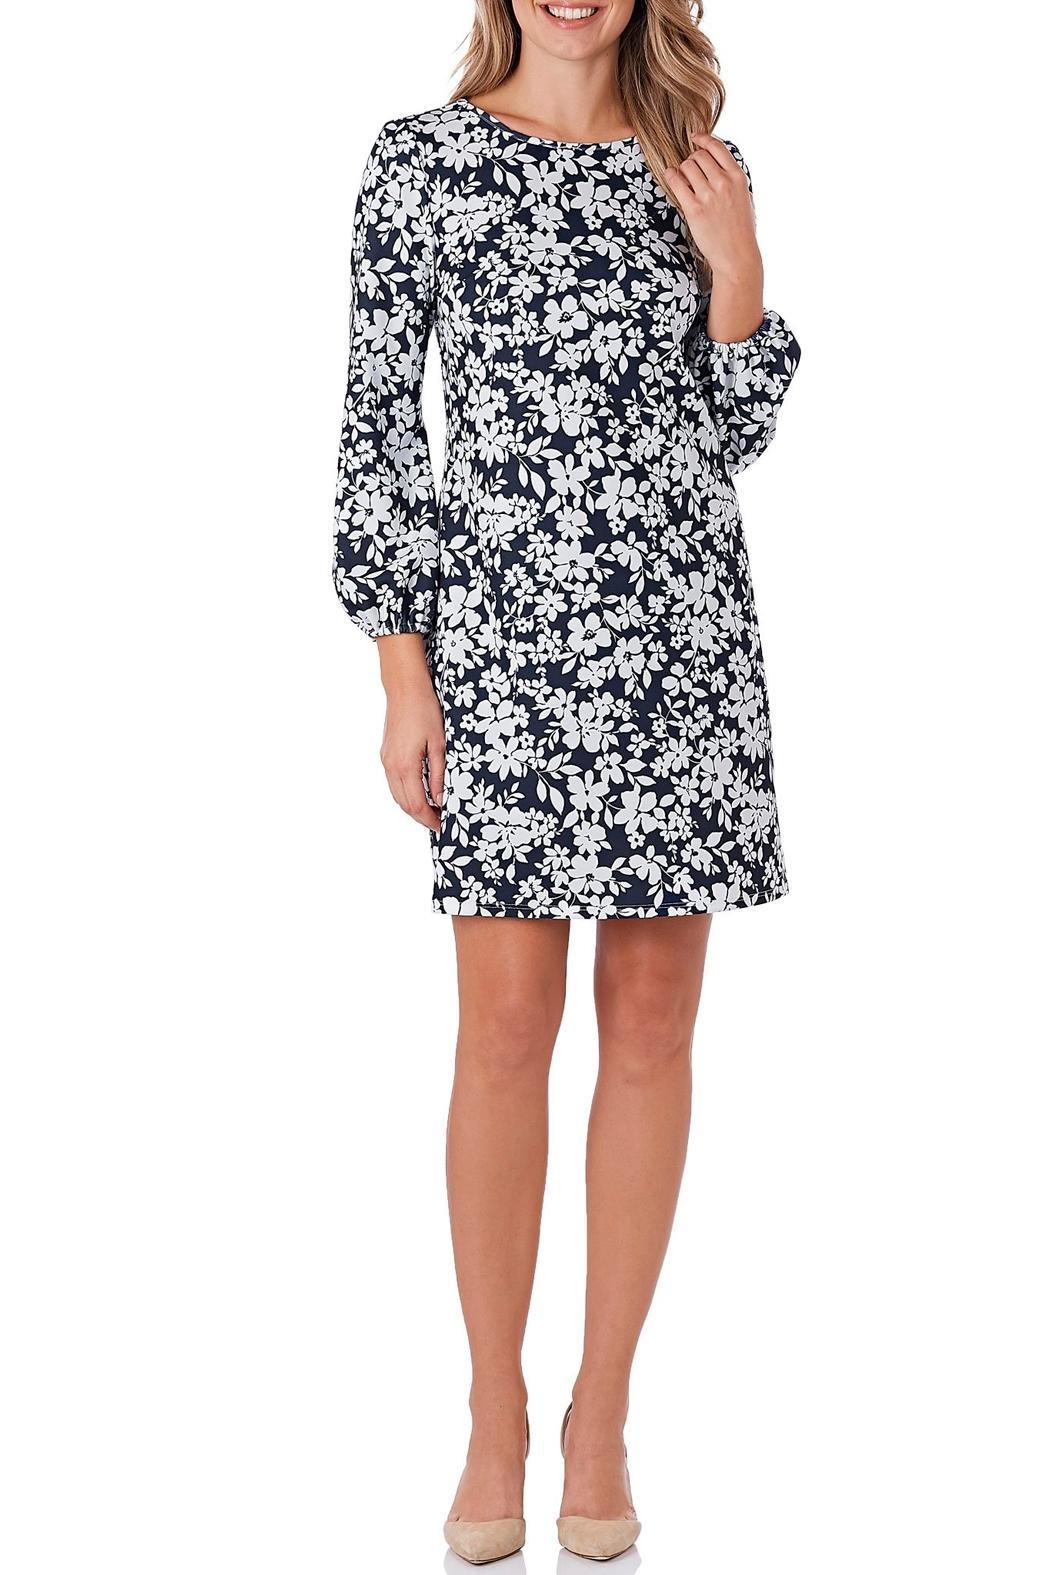 Jude Connally Chloe Stretch-Crepe Dress - Main Image